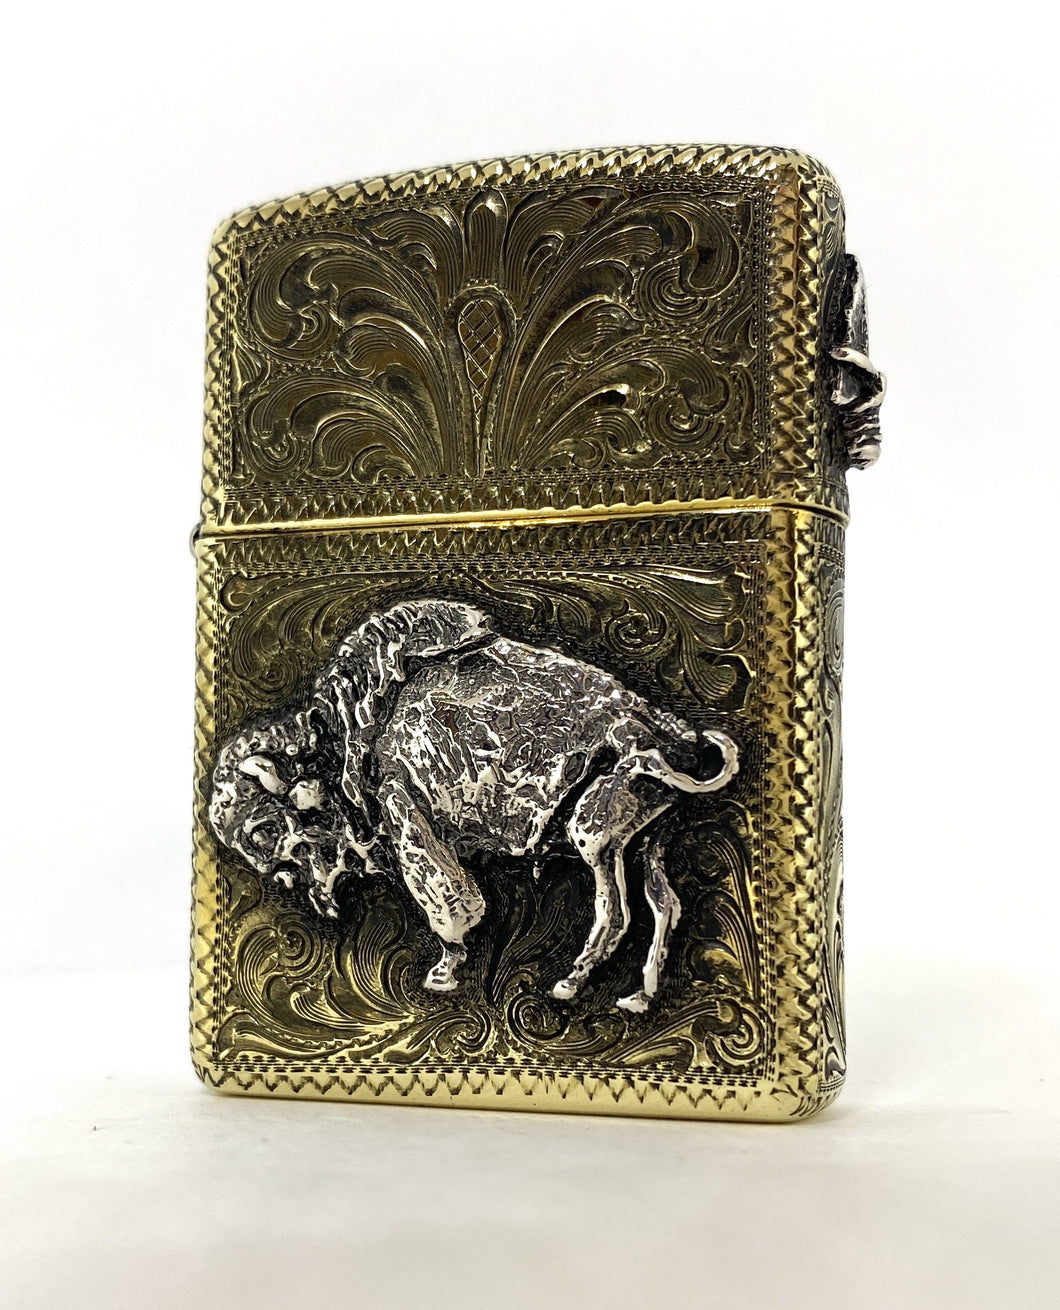 Fully Engraved Brass Armor Zippo Lighter With Sterling